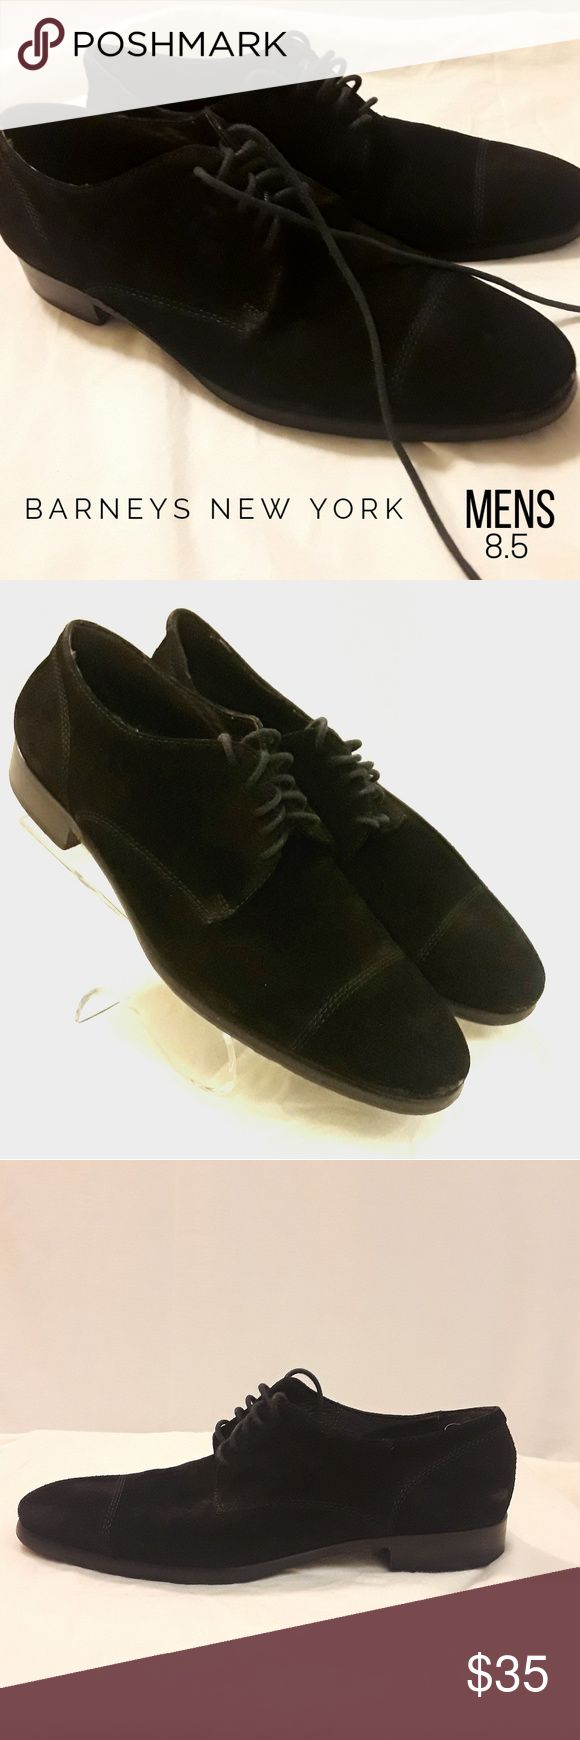 Barneys New York Suede Oxfords Genuine leather lace up oxford shoe for men by Barneys New York  100% AUTHENTIC - MADE IN ITALY  Barneys New York Co-op Distressed Suede Oxfords Suede Rubber sole Barneys New York CO-OP Shoes Oxfords & Derbys